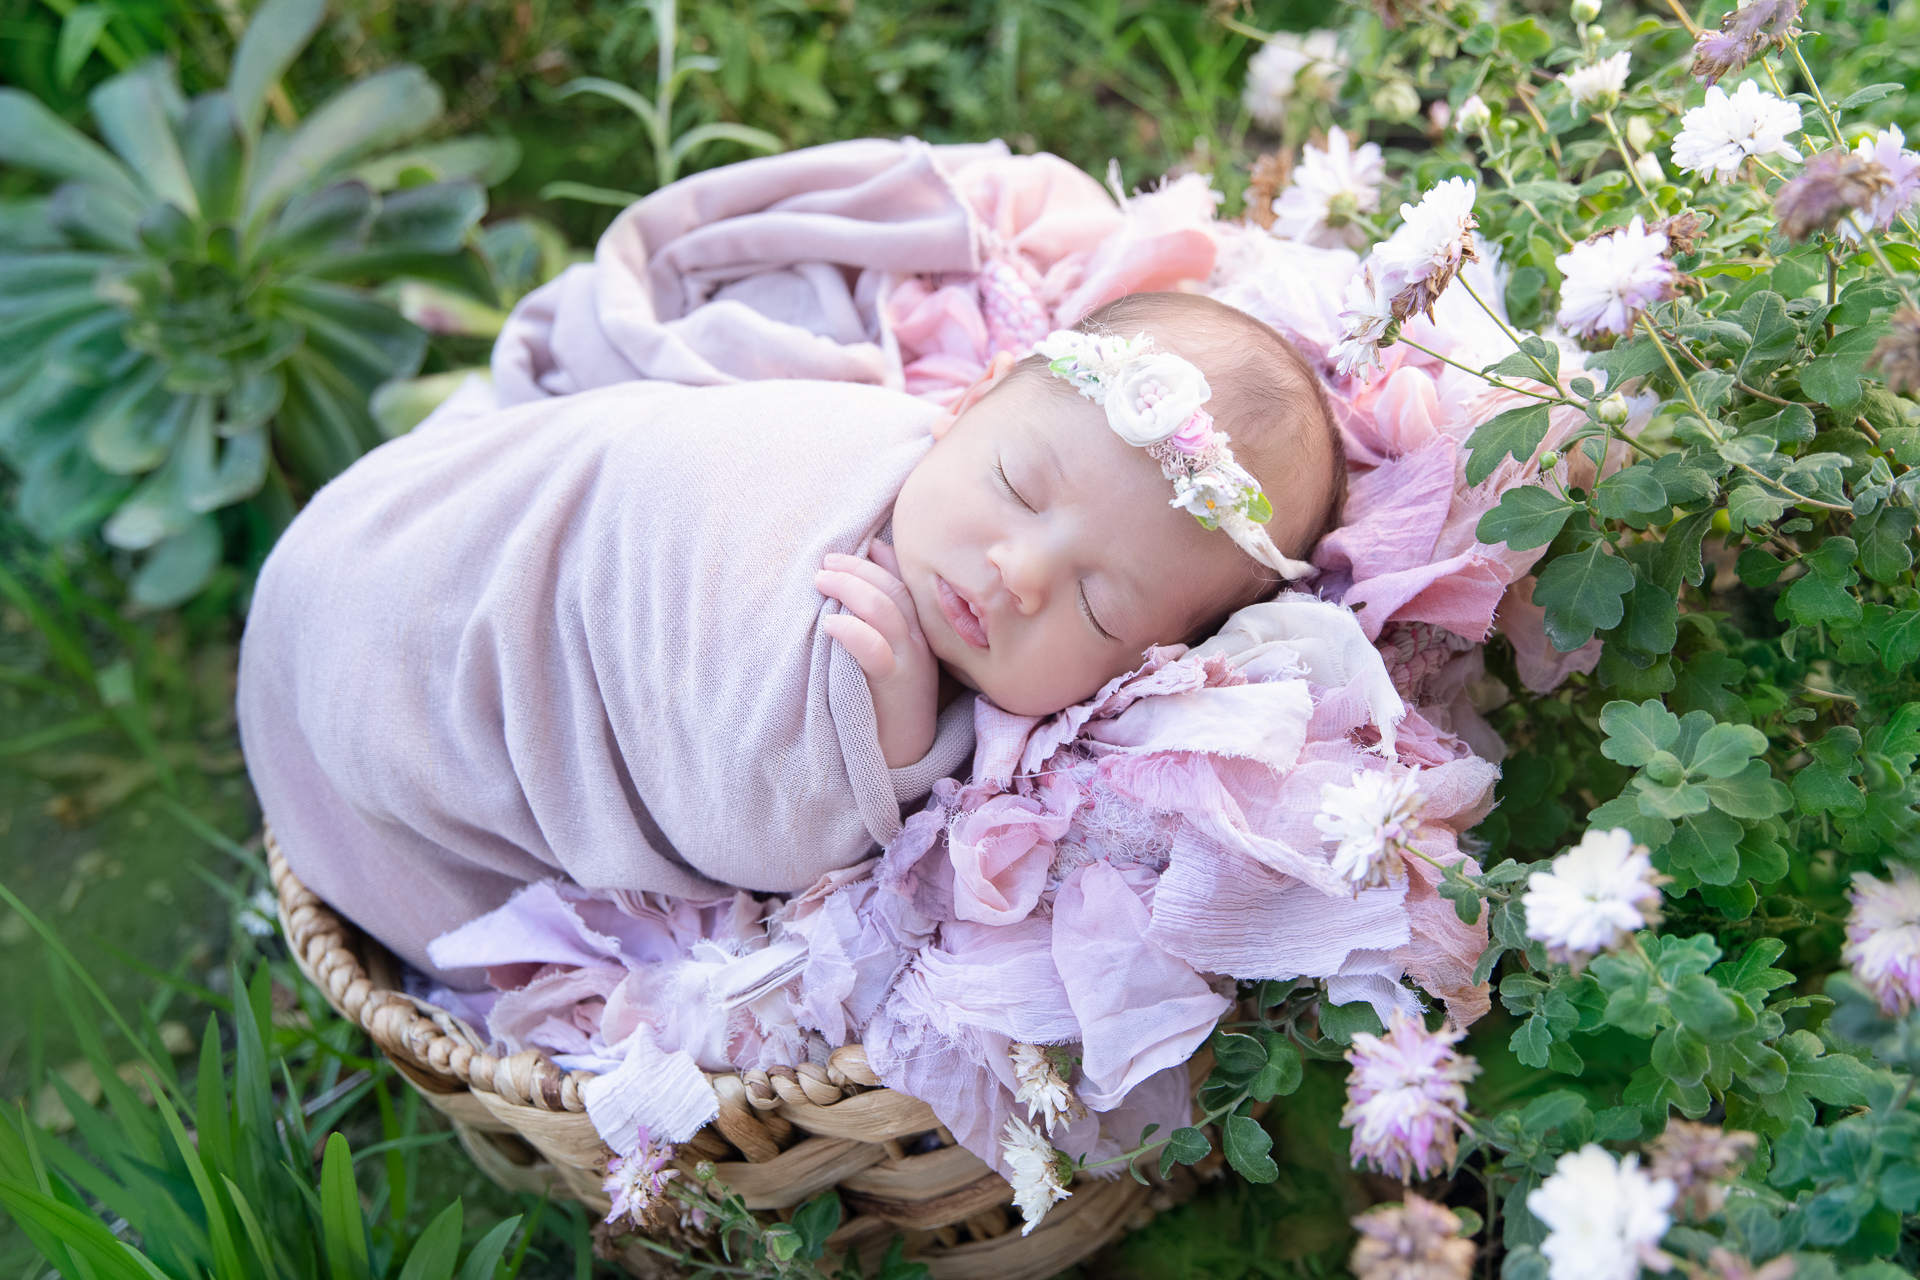 Newborn wearing pink headband and pink wrap rests on a round prop decorated with pink carpet outdoors.